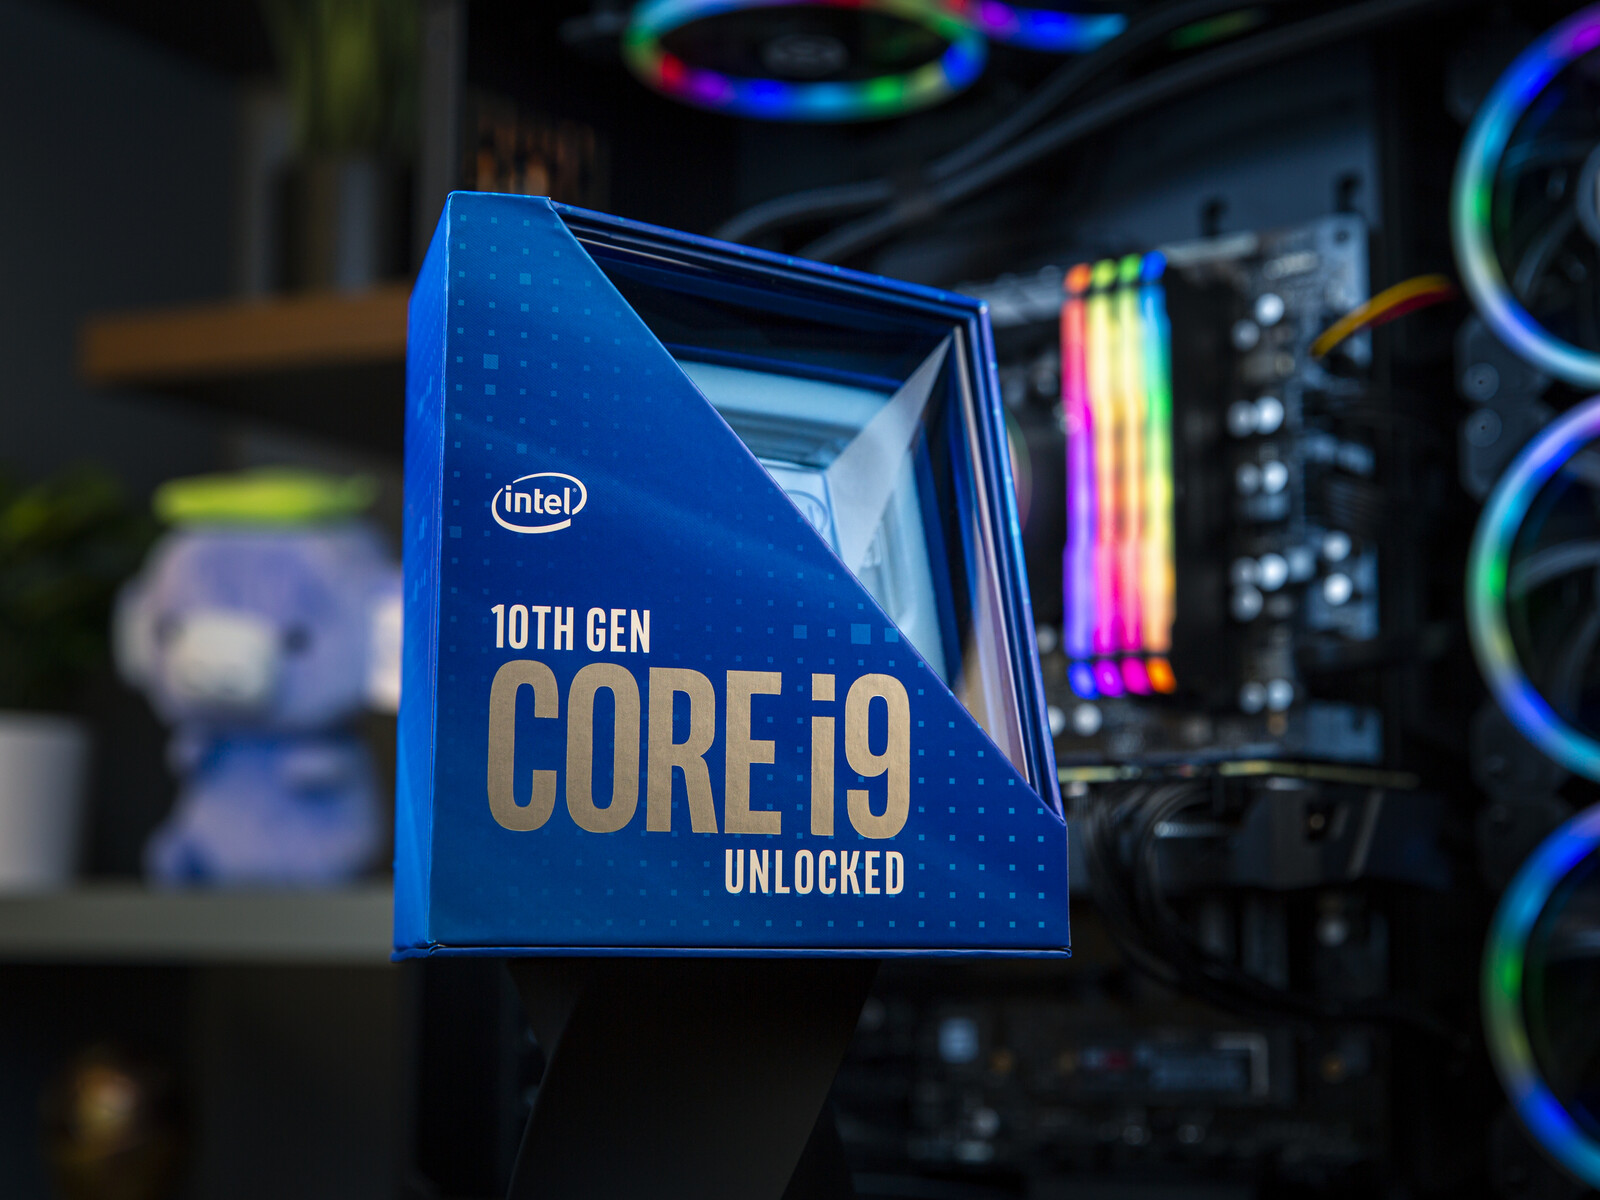 Intel Rocket Lake-S SKUs and specifications leak: Core i9-11900K to offer 8C/16T, 5.3 GHz single-core and 4.8 GHz all-core boosts with 16 MB L3 cache